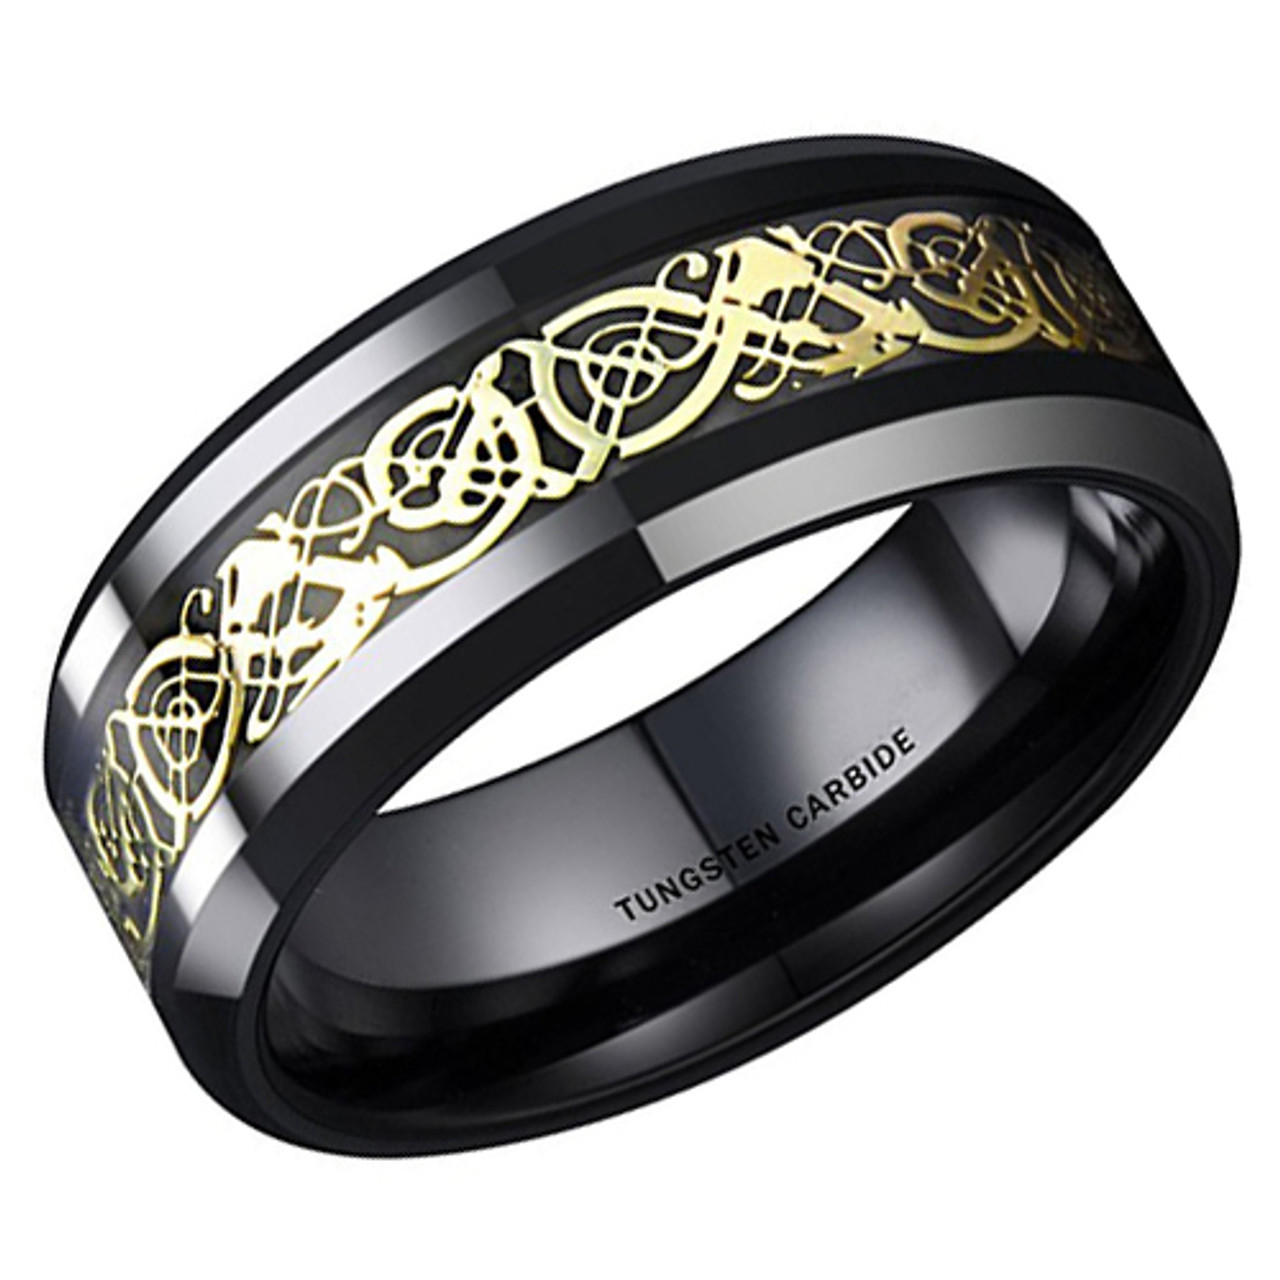 8mm Unisex Or Men S Tungsten Carbide Wedding Ring Band Black Celtic Knot Band With Yellow Gold Resin Inlay Design Ring Blingers